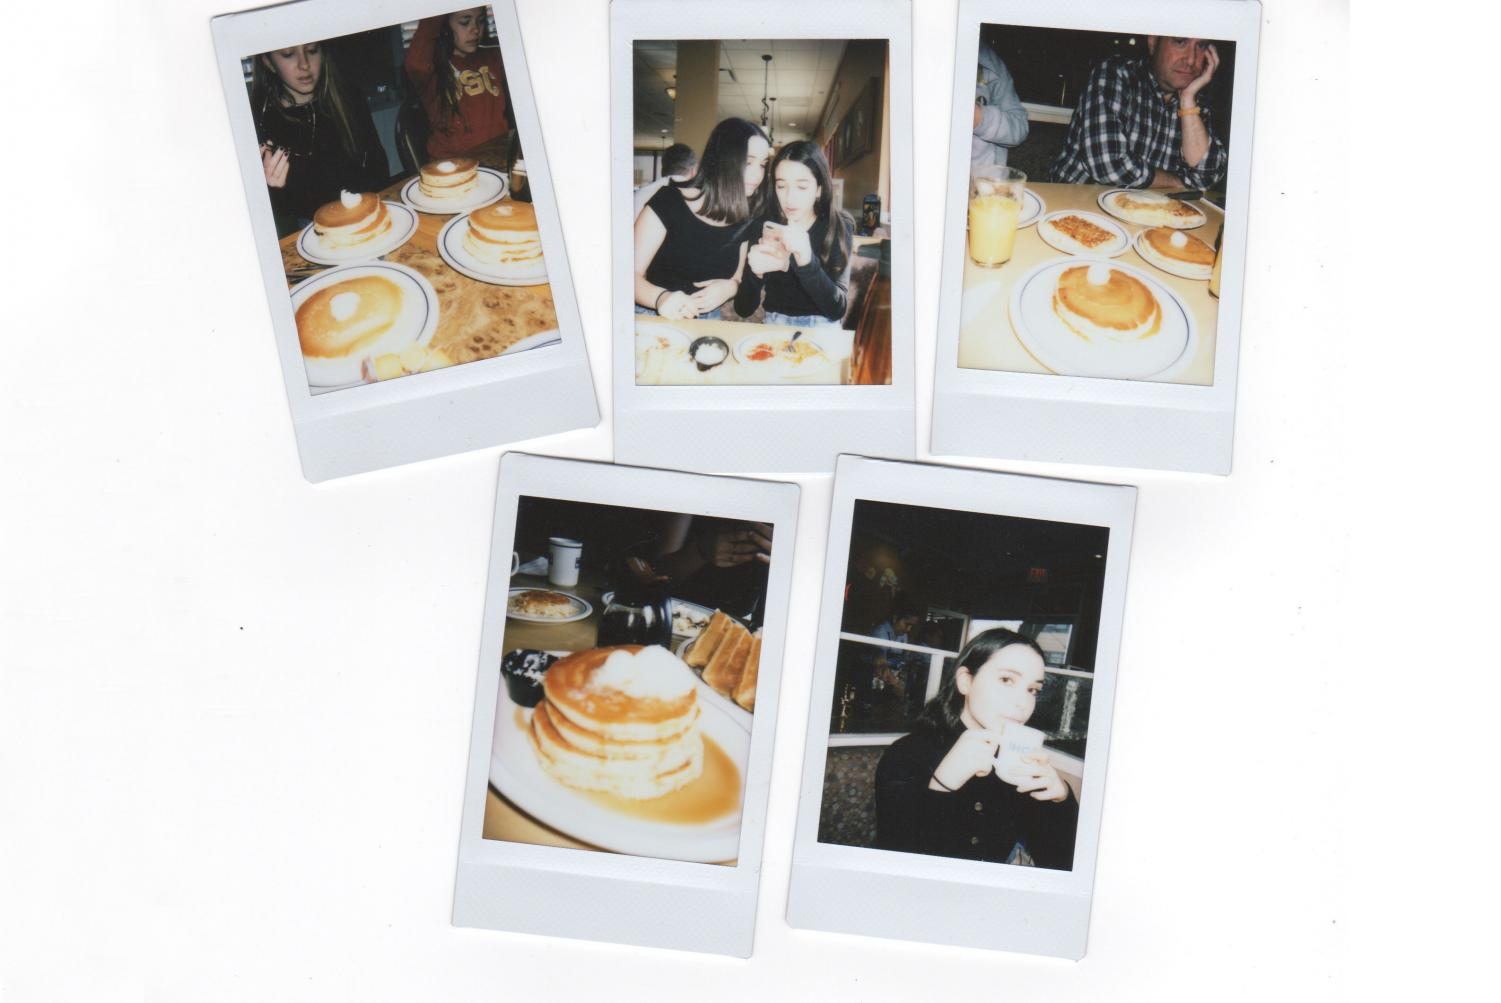 The assortment of polaroid pictures were taken on various trips to IHOP. The images capture moments with family, friends and breakfast.